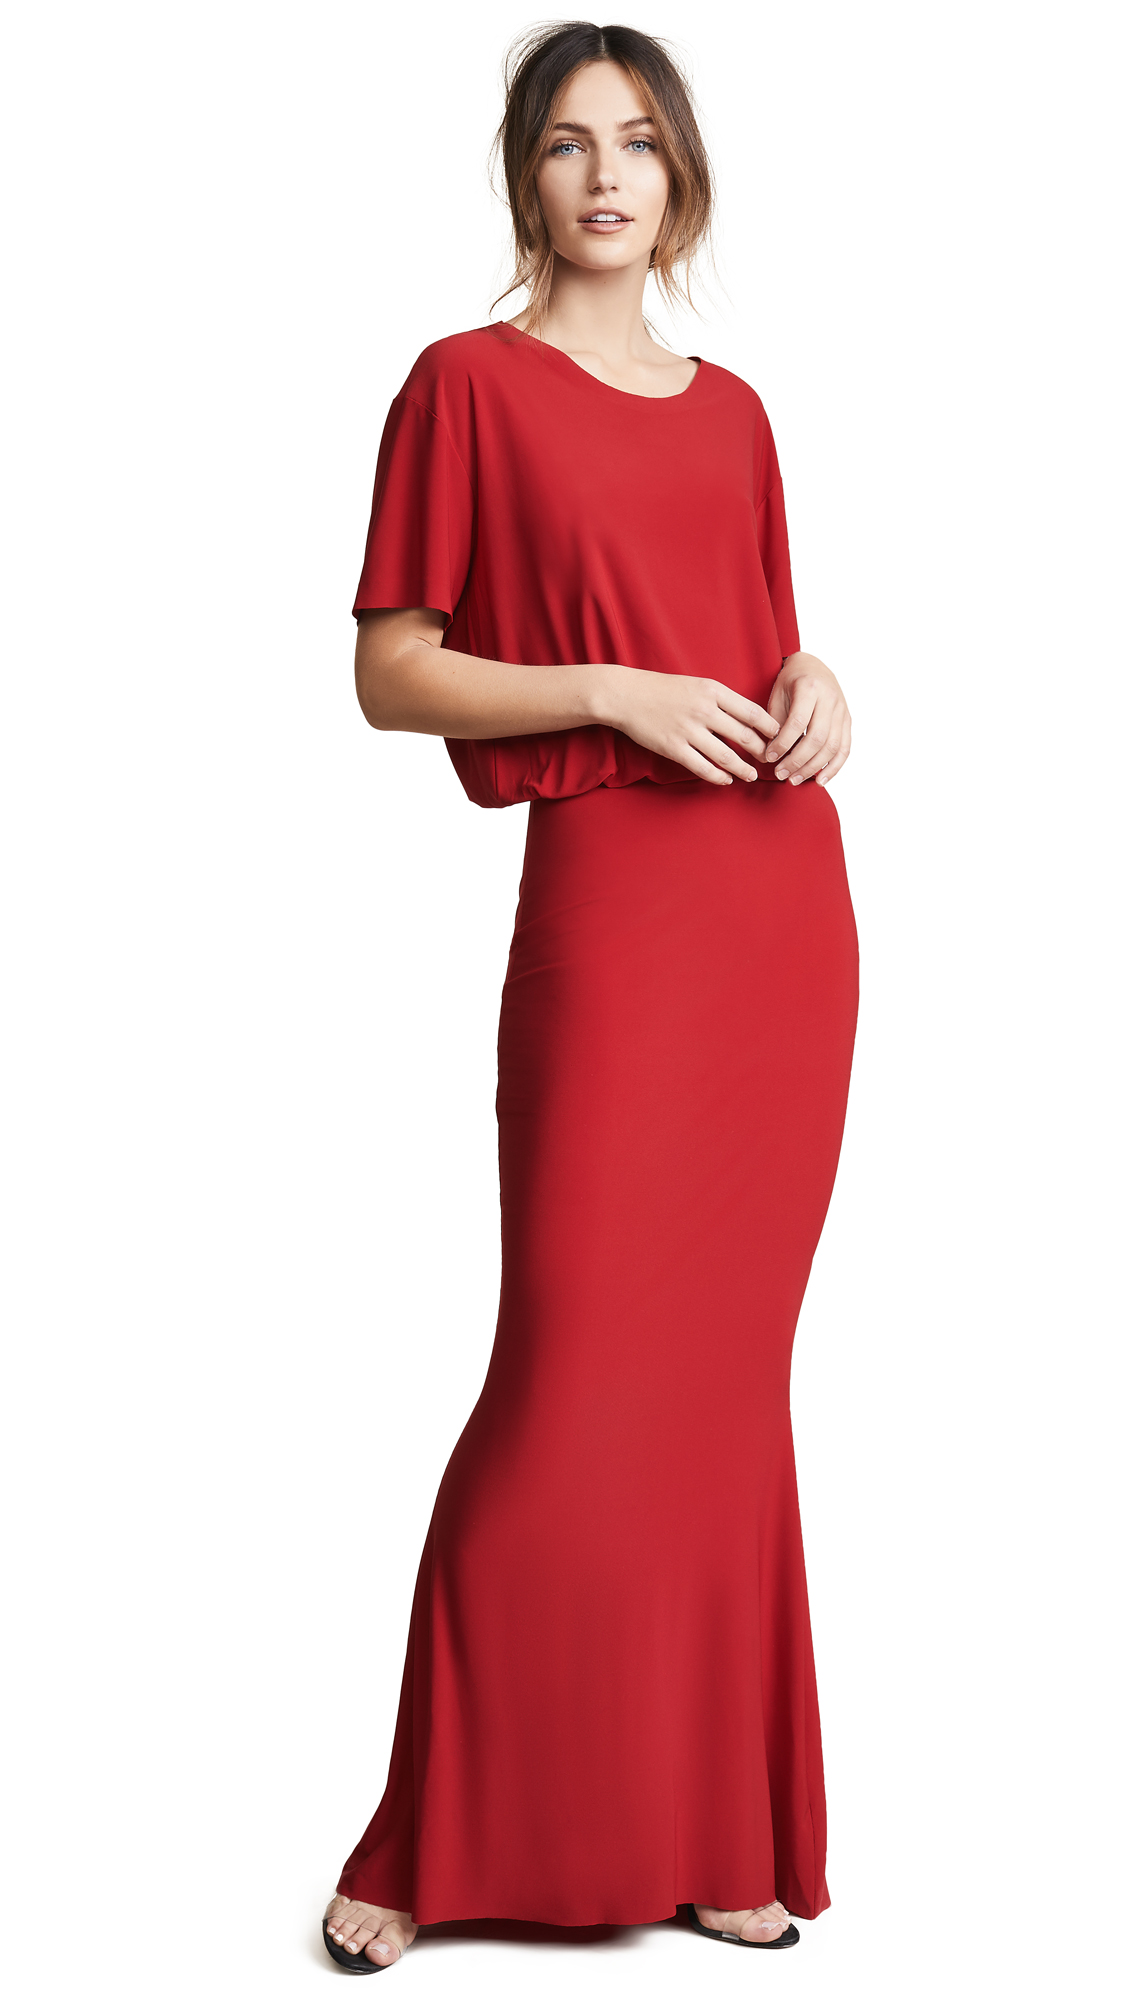 Norma Kamali Boxy Top Fishtail Gown - Red